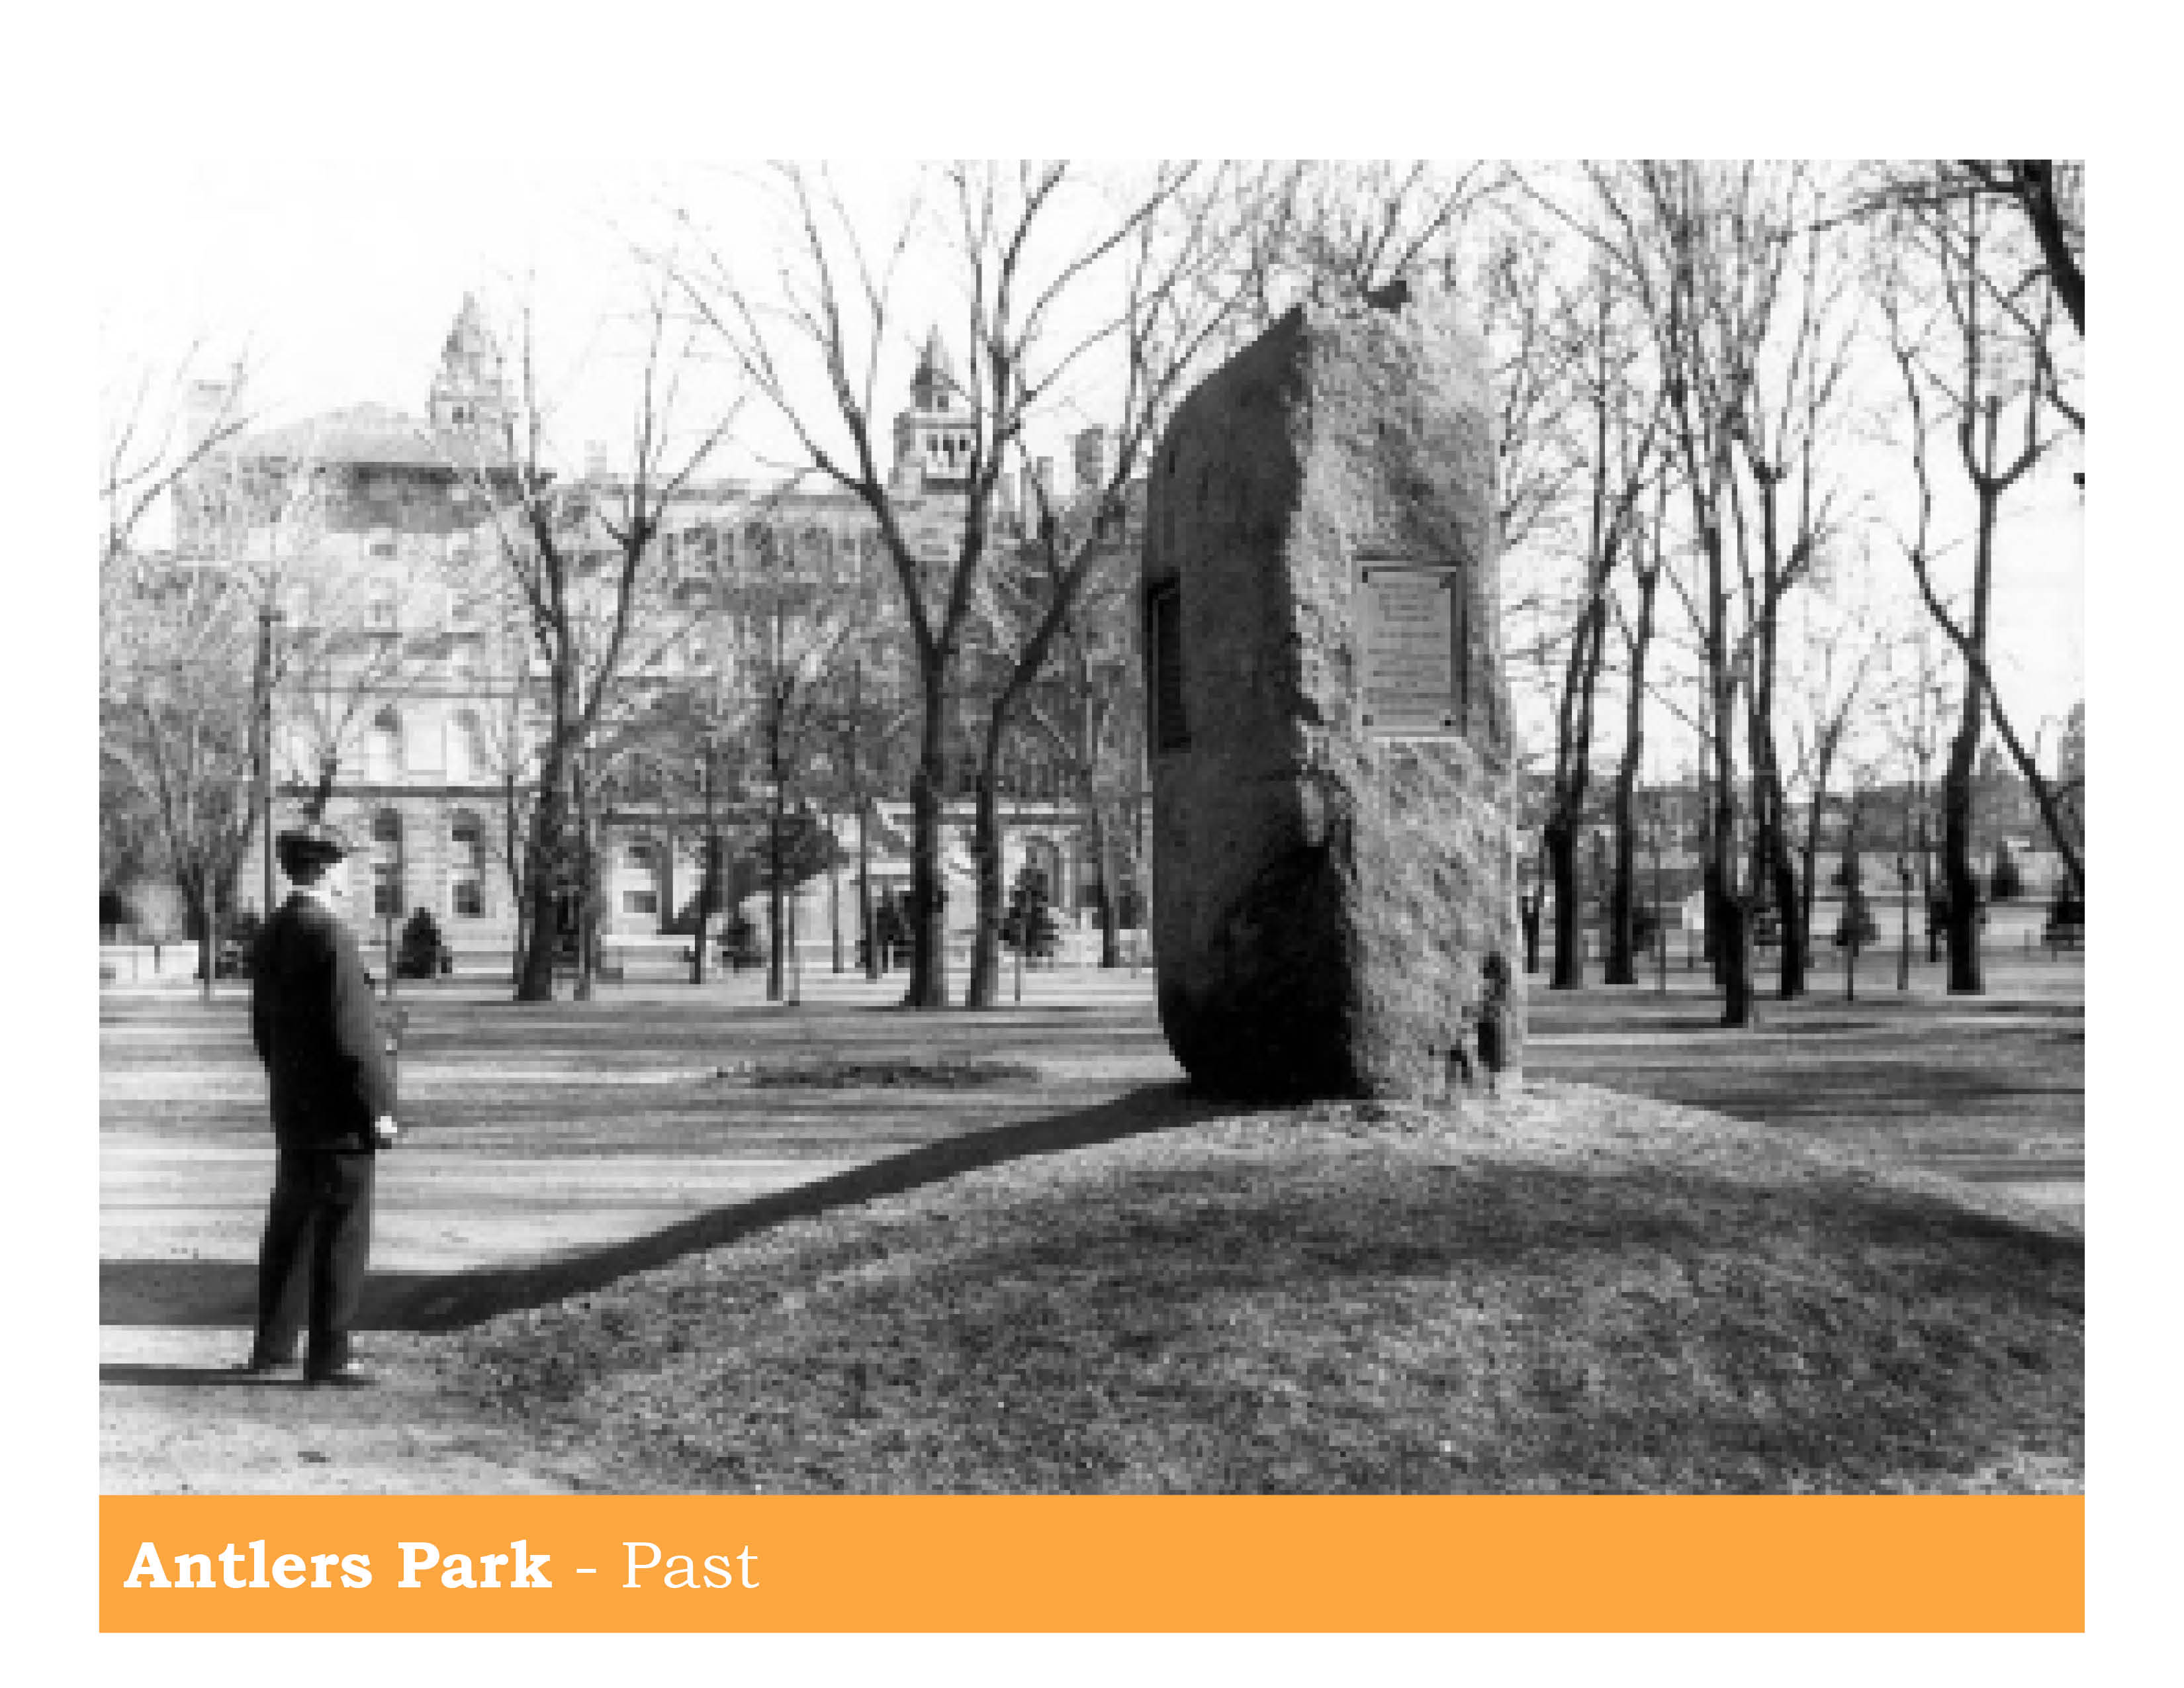 andtlers park past